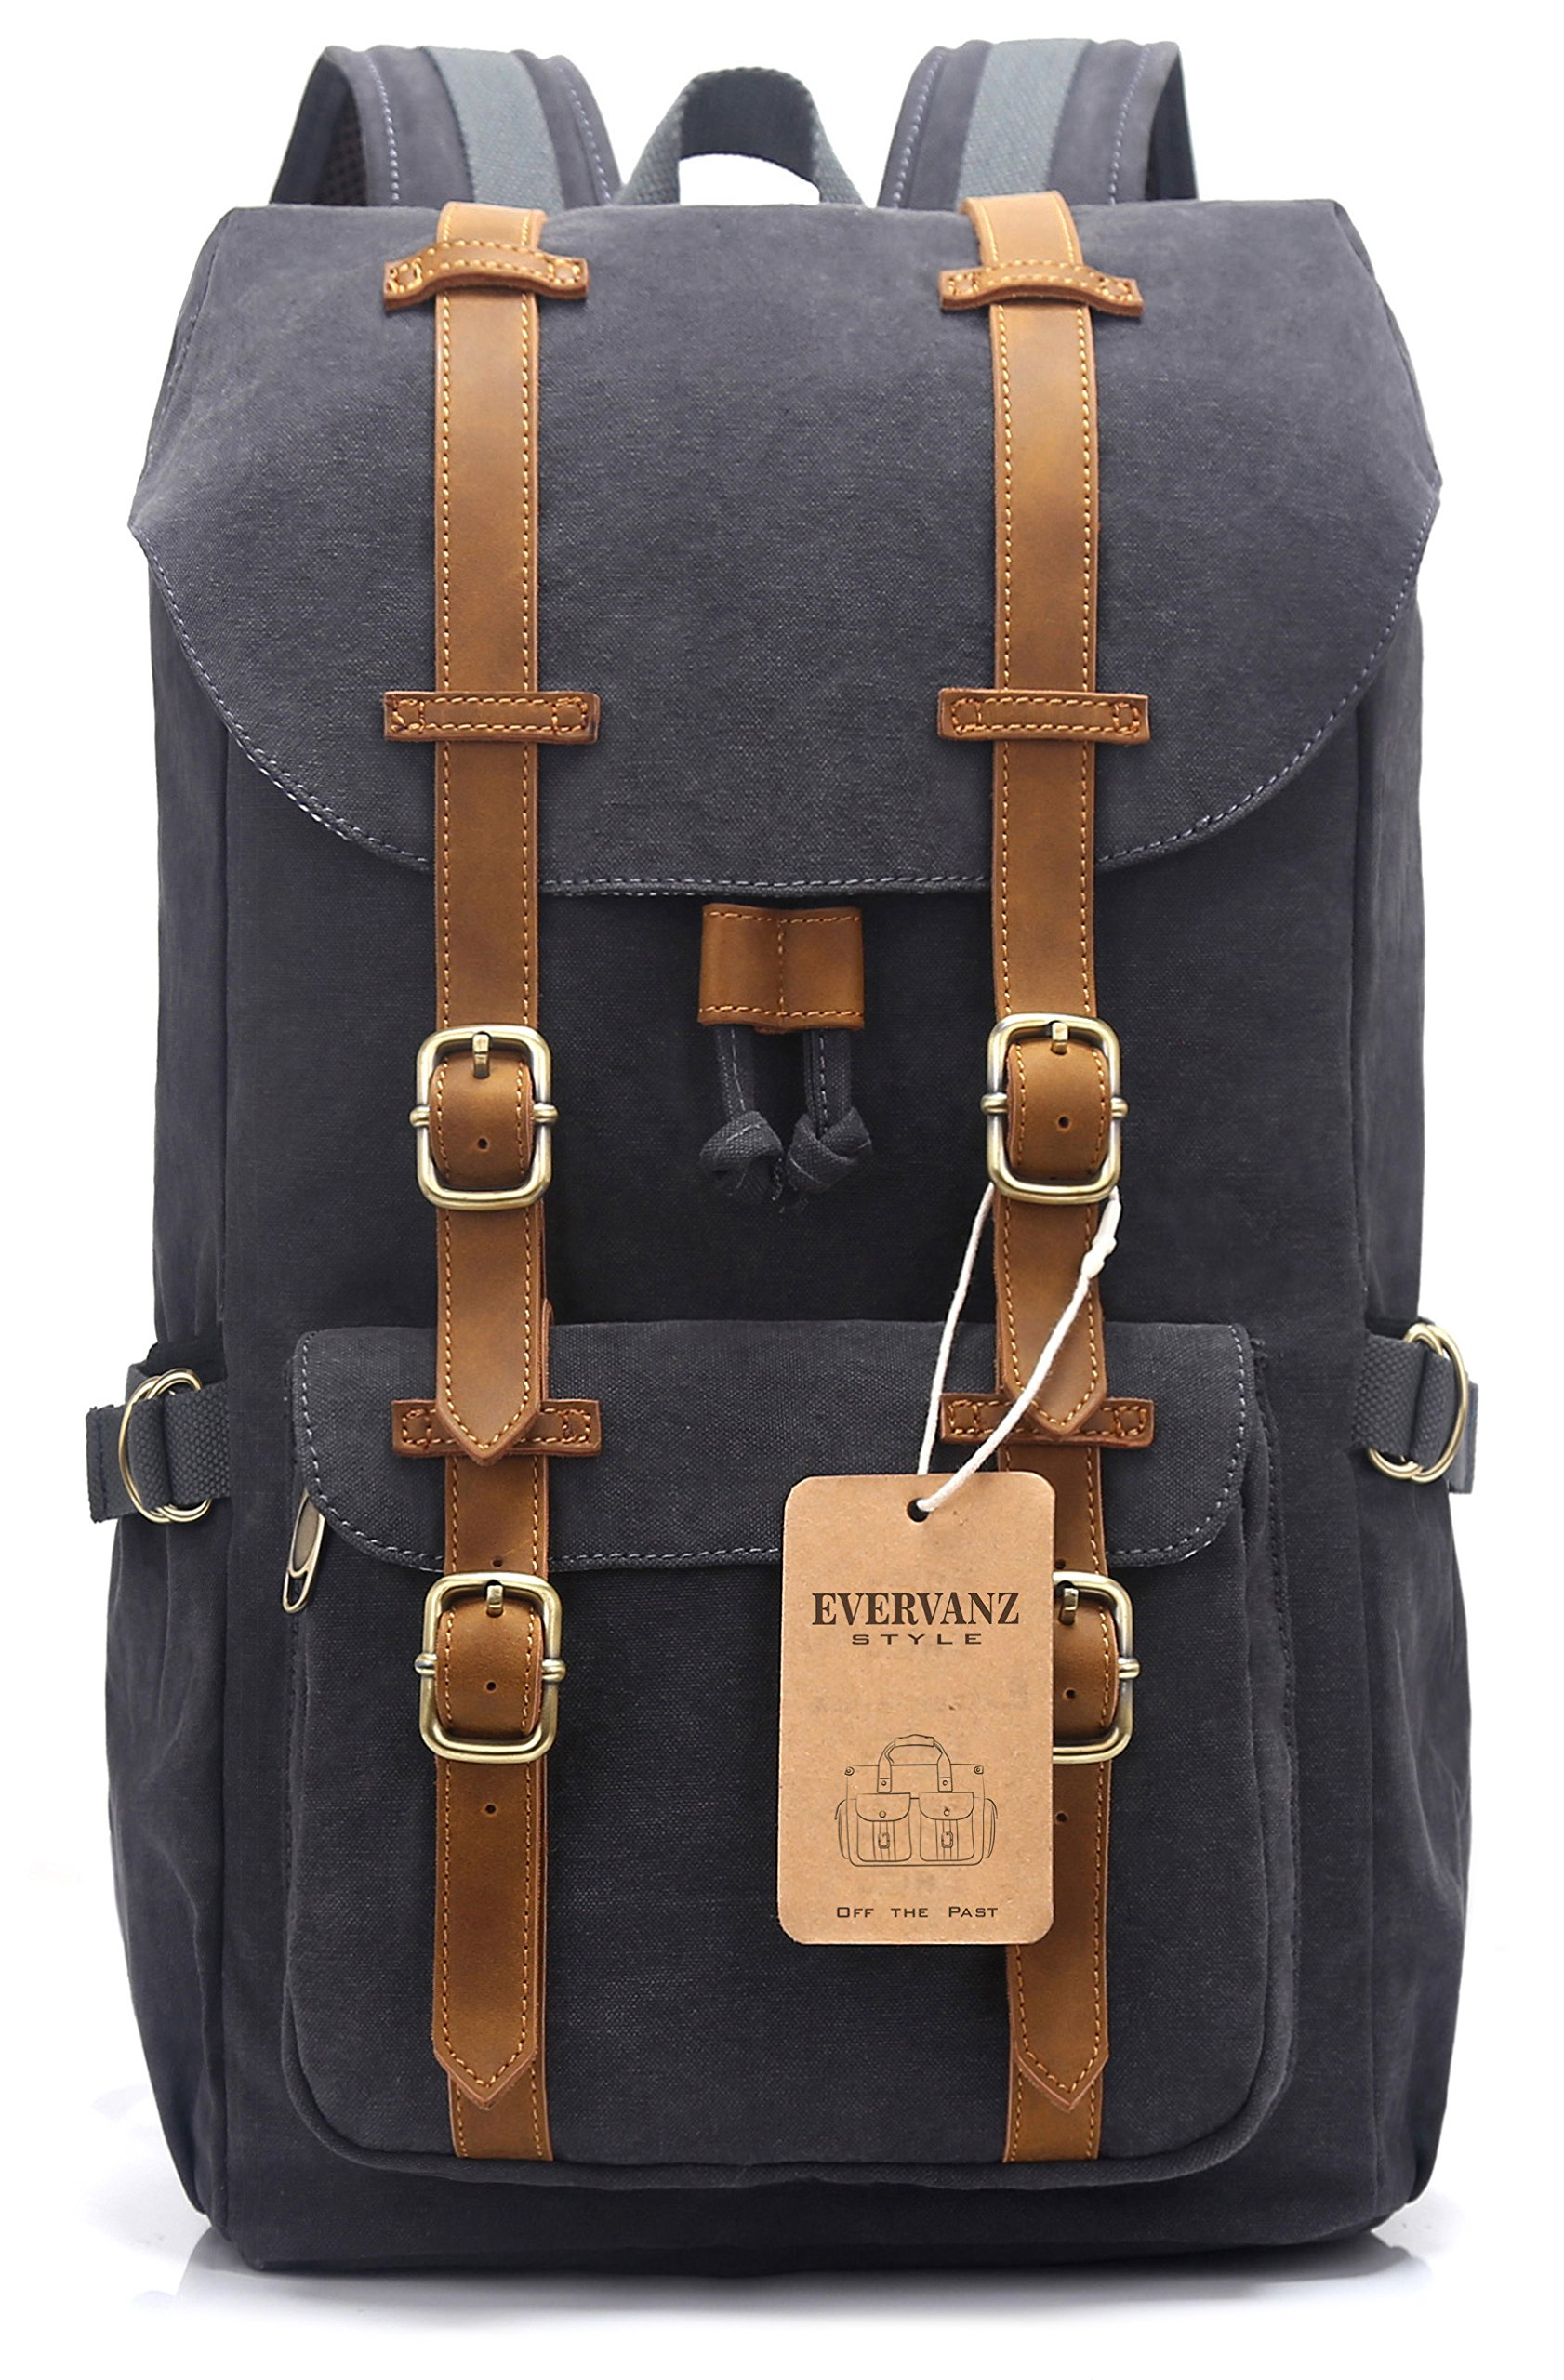 EverVanz Outdoor Canvas Leather Backpack, Travel Hiking Camping Rucksack Pack, Large Casual Daypack, College School Backpack, Shoulder Bags Fits 15'' Laptop Tablets by EverVanz